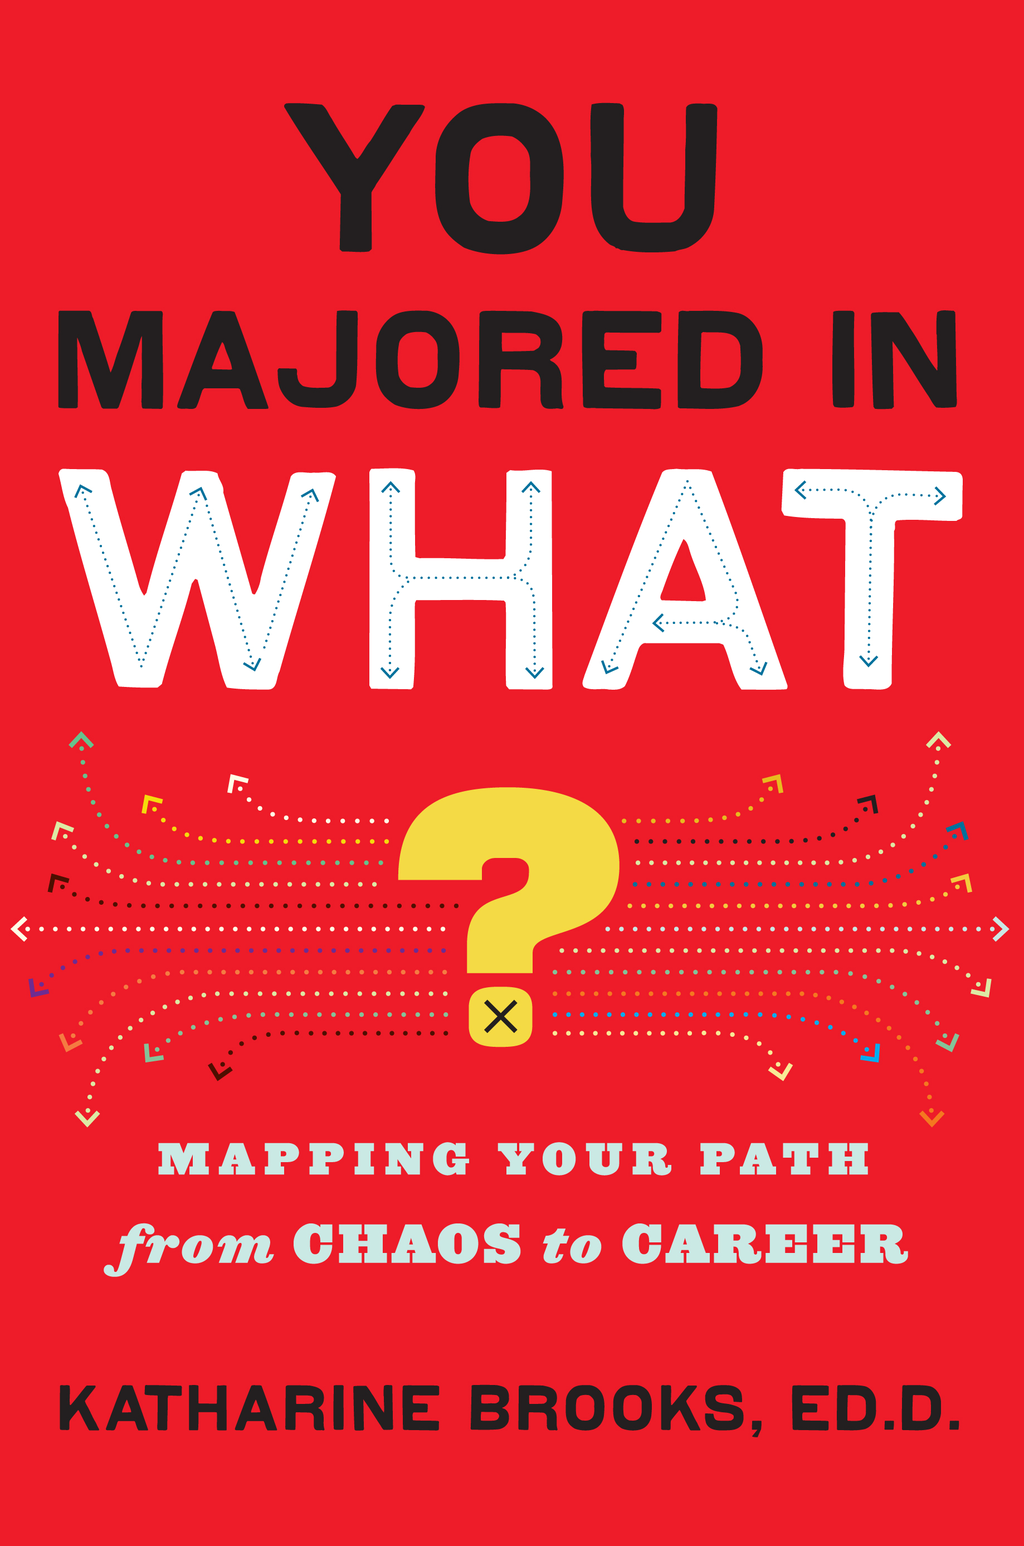 You Majored in What? Mapping Your Path from Chaos to Career